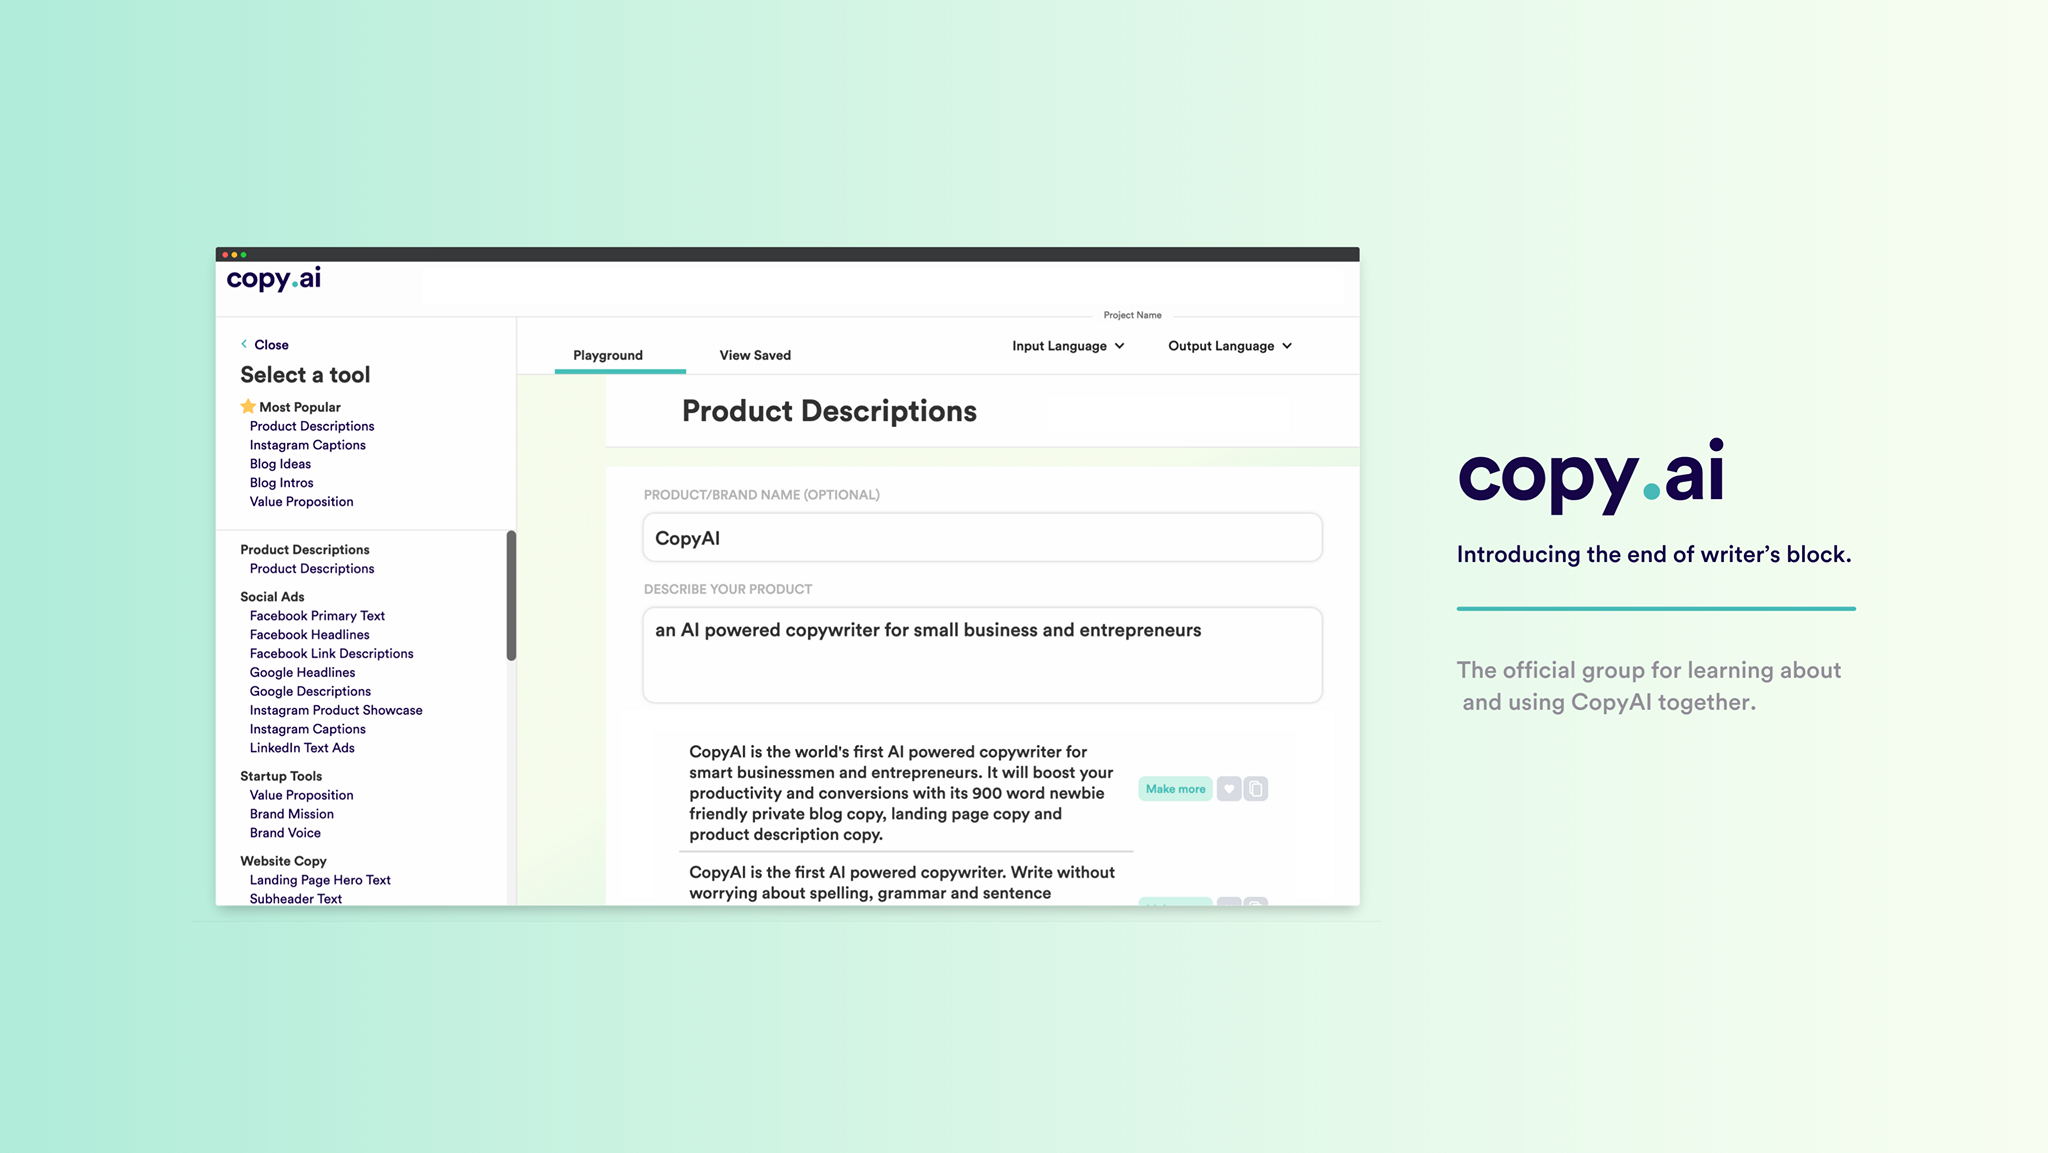 Open the CopyAI app to get started with changing the tone of your messaging